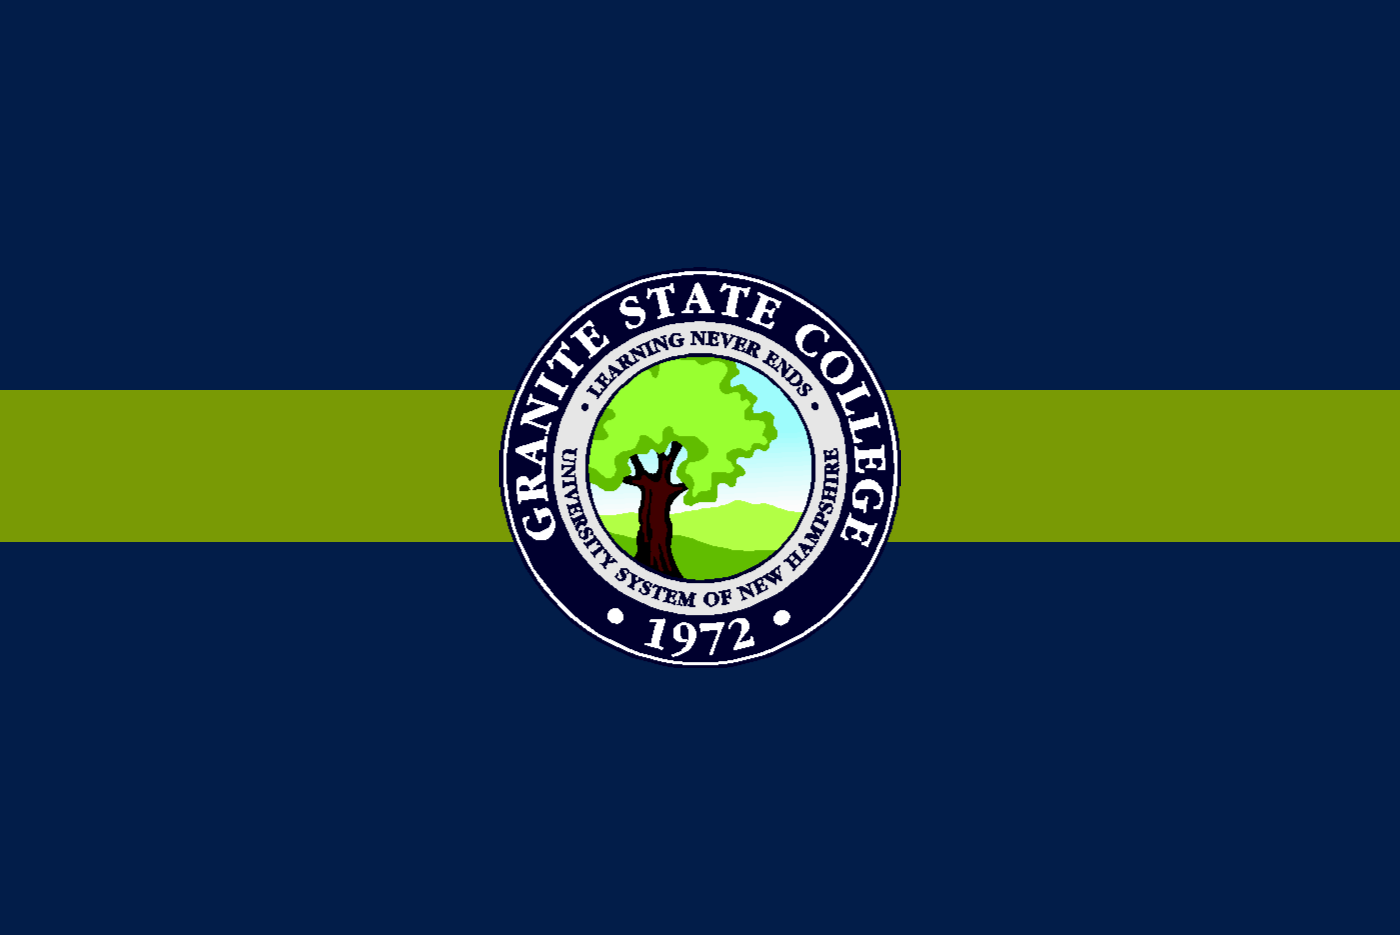 Granite State College seal.